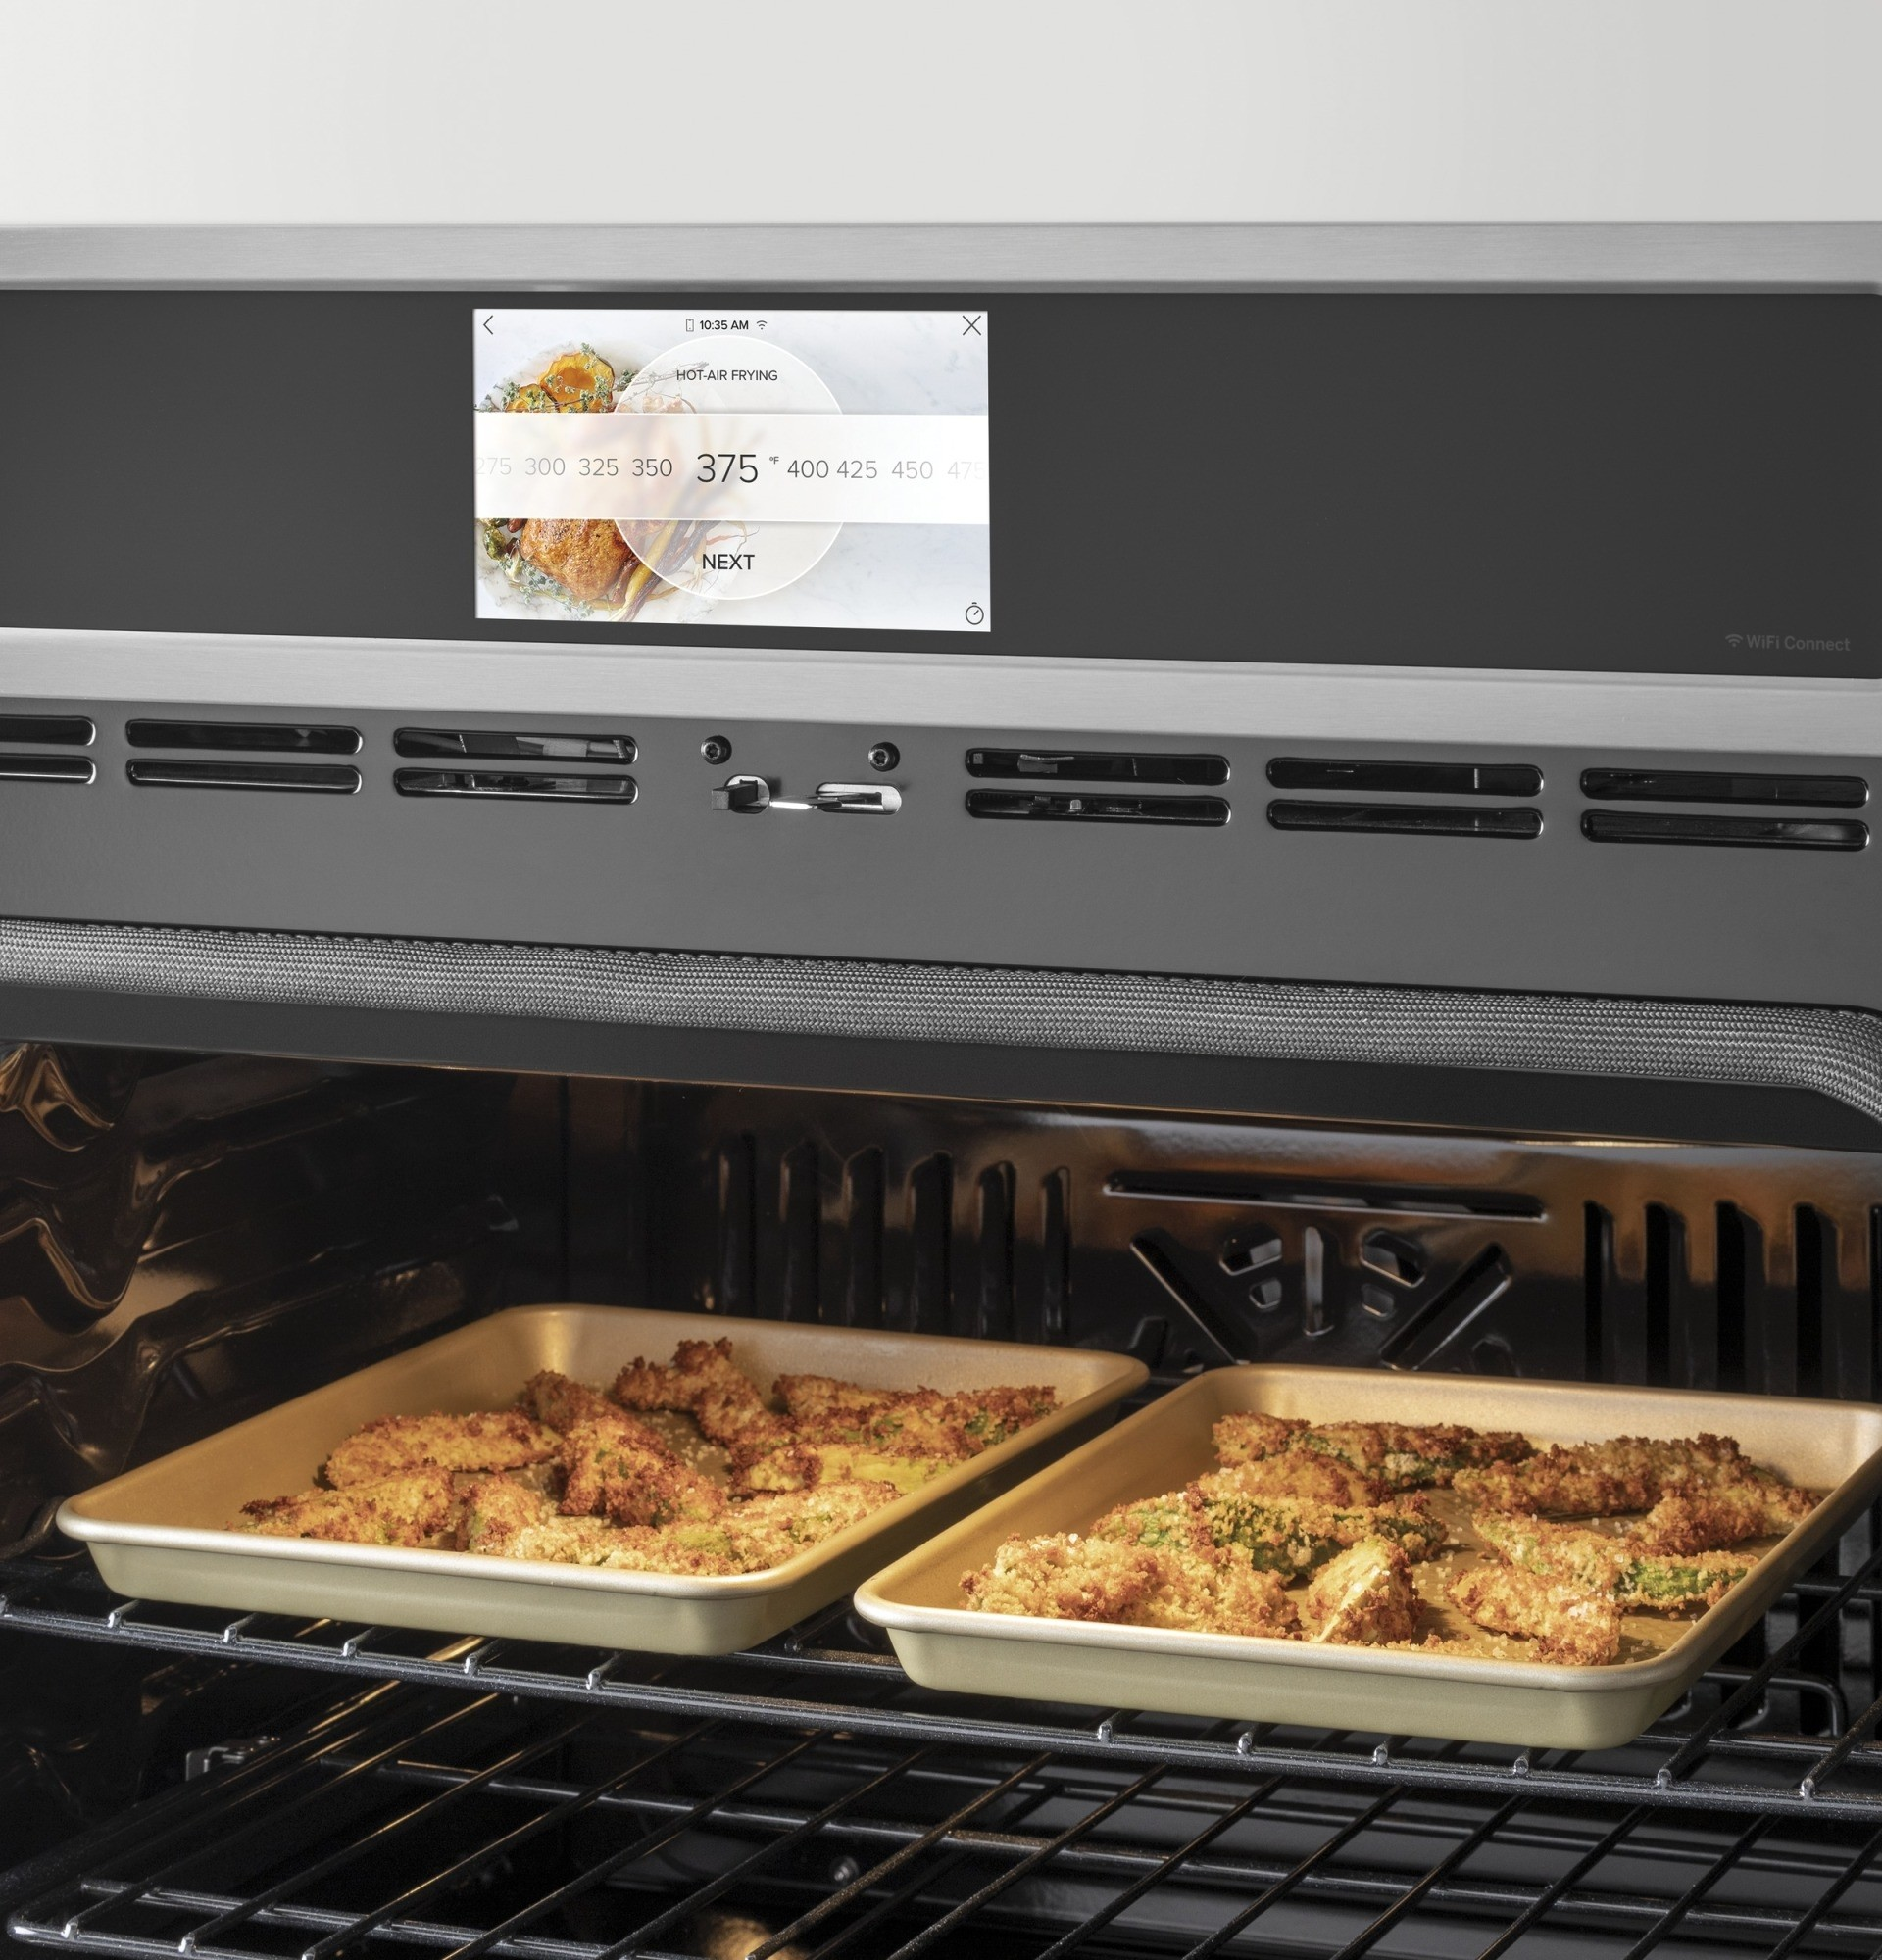 Cts70dp2ns1 Cafe 30 Inch Built In Oven Convection